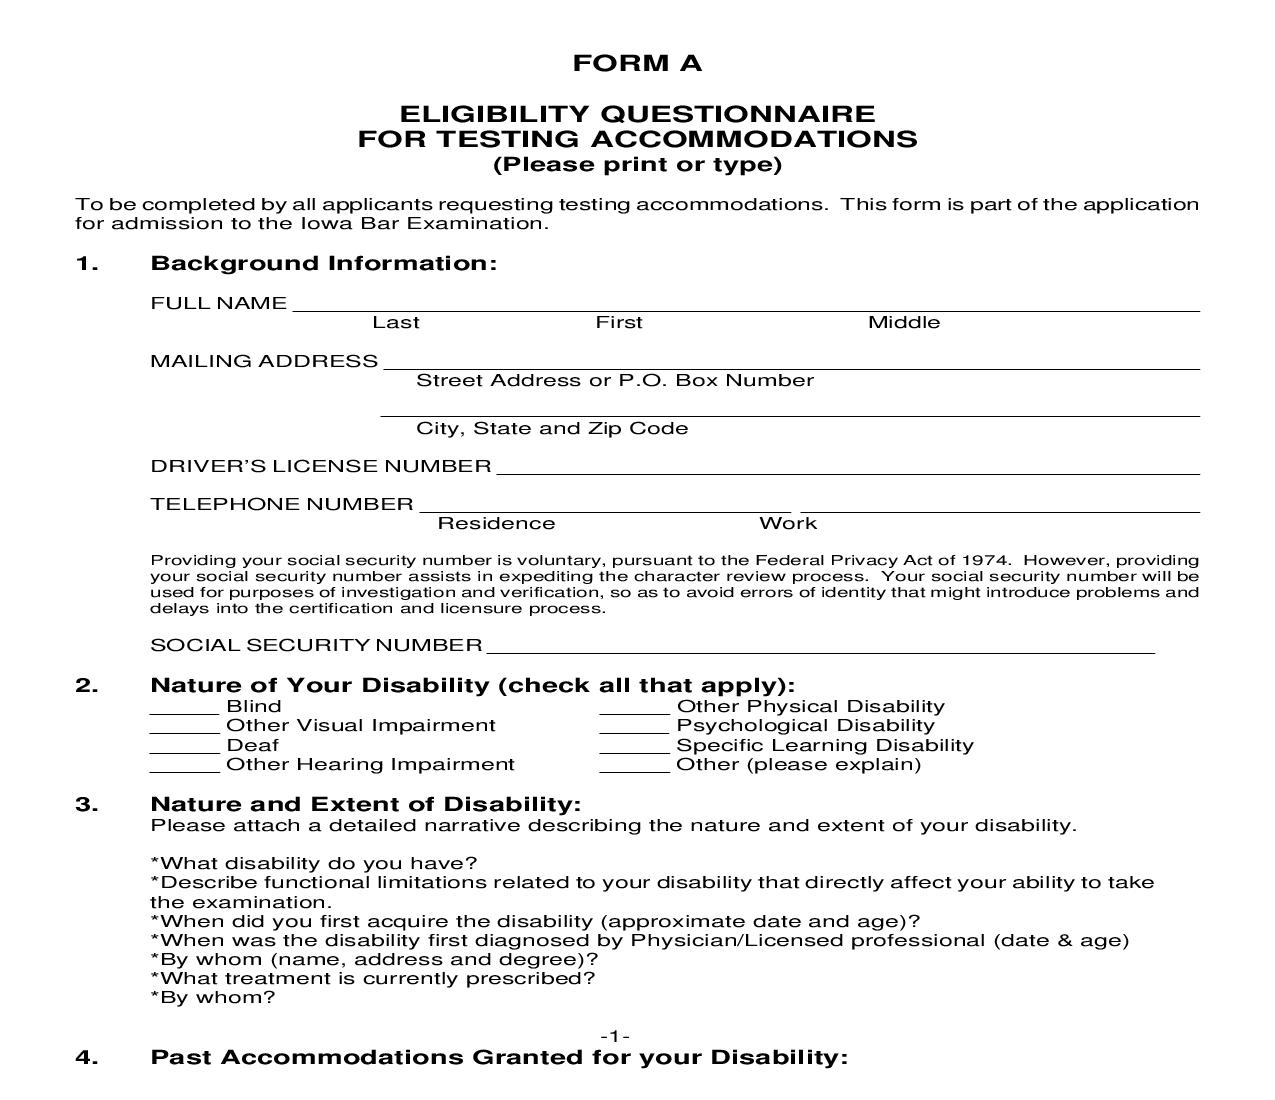 Application For Testing Accommodations - Form A | Pdf Fpdf Doc Docx | Iowa